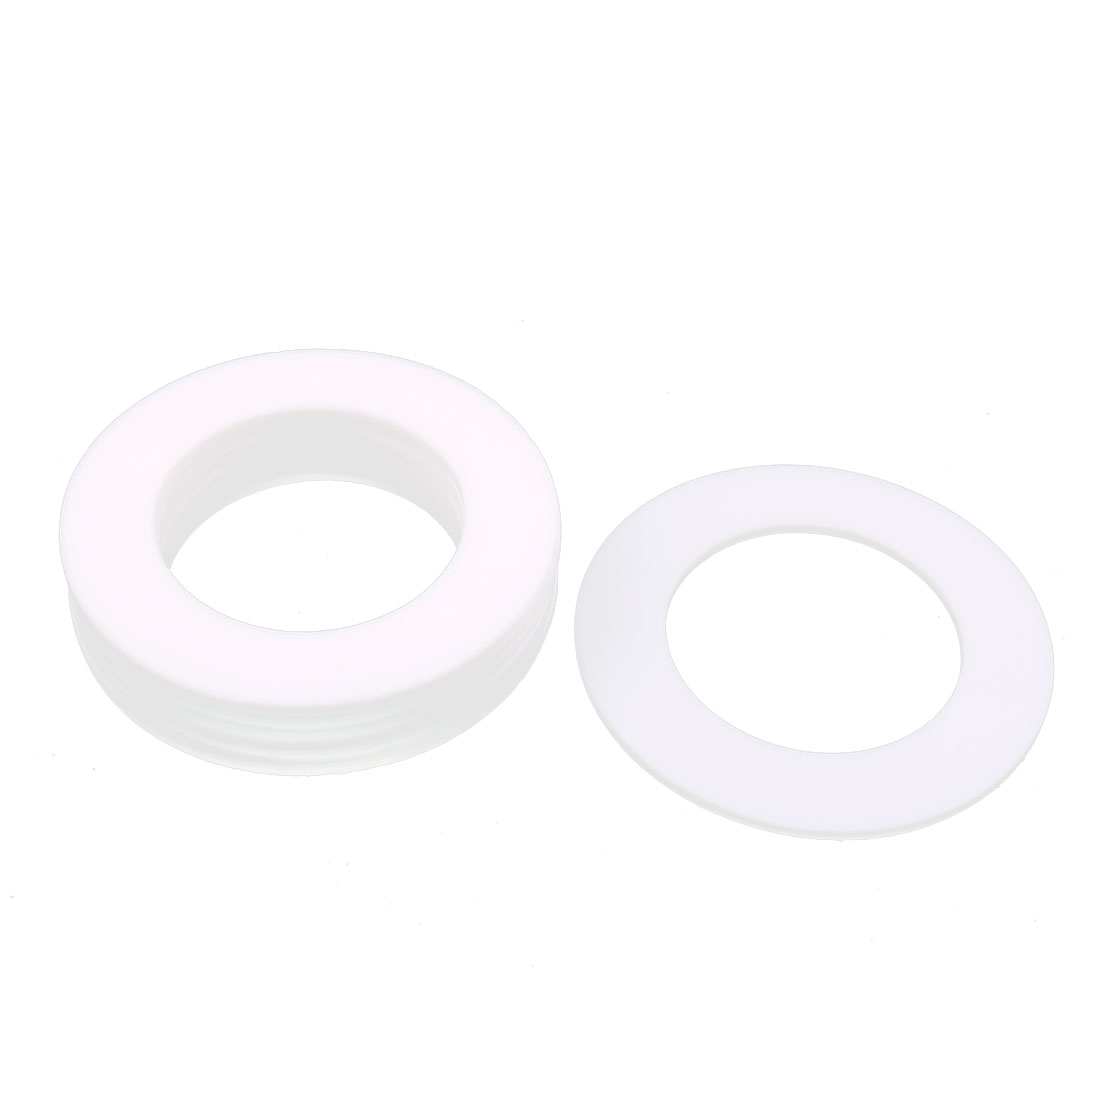 DN65 122 x 76 x 3mm PTFE Flange Gasket Sanitary Pipe Fitting Ferrule White 10Pcs